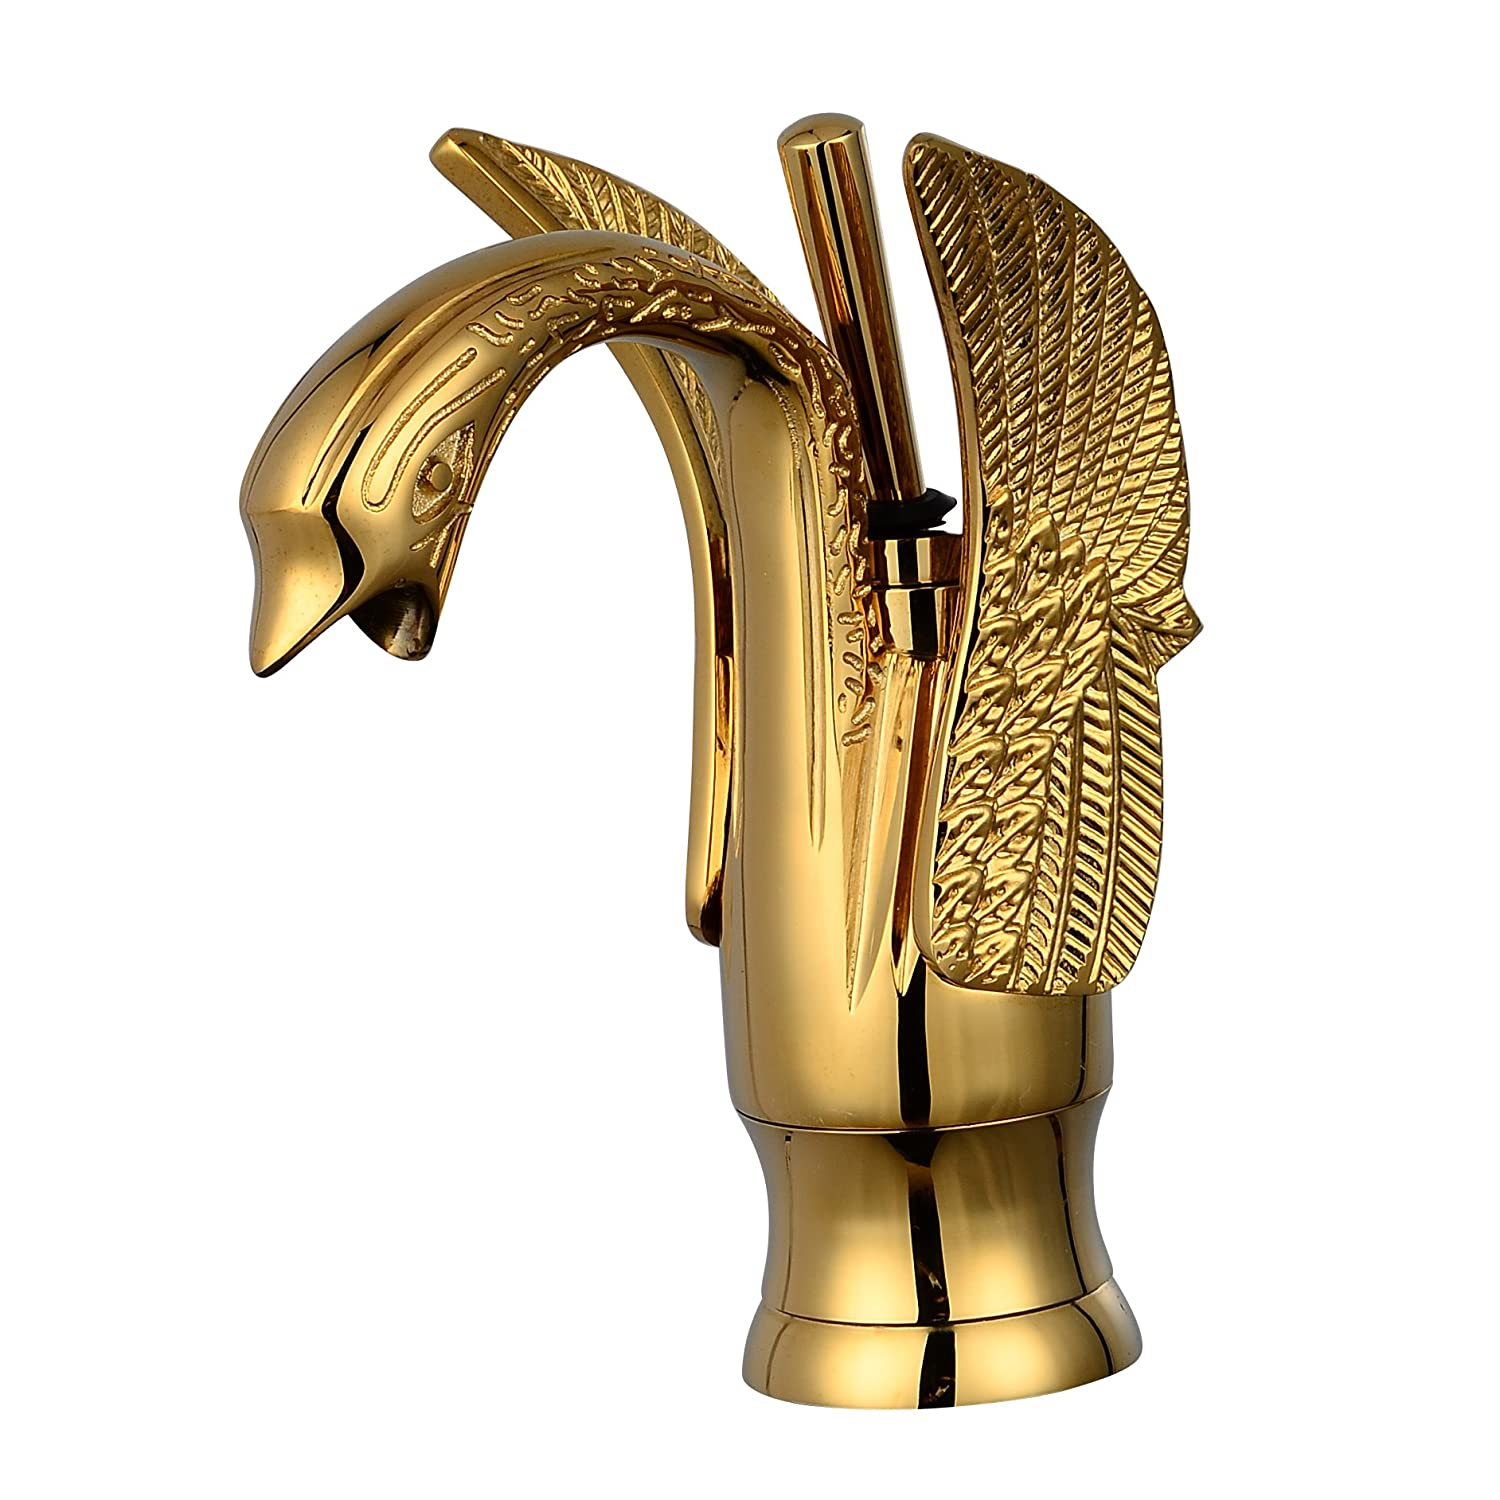 Bathroom sink faucet one hole double handle basin mixer tap ebay - Rozinsanitary Gold Polished Swan Shape Bathroom Sink Faucet Single Lever Basin Mixer Tap Bathroom Golden Faucet Amazon Com